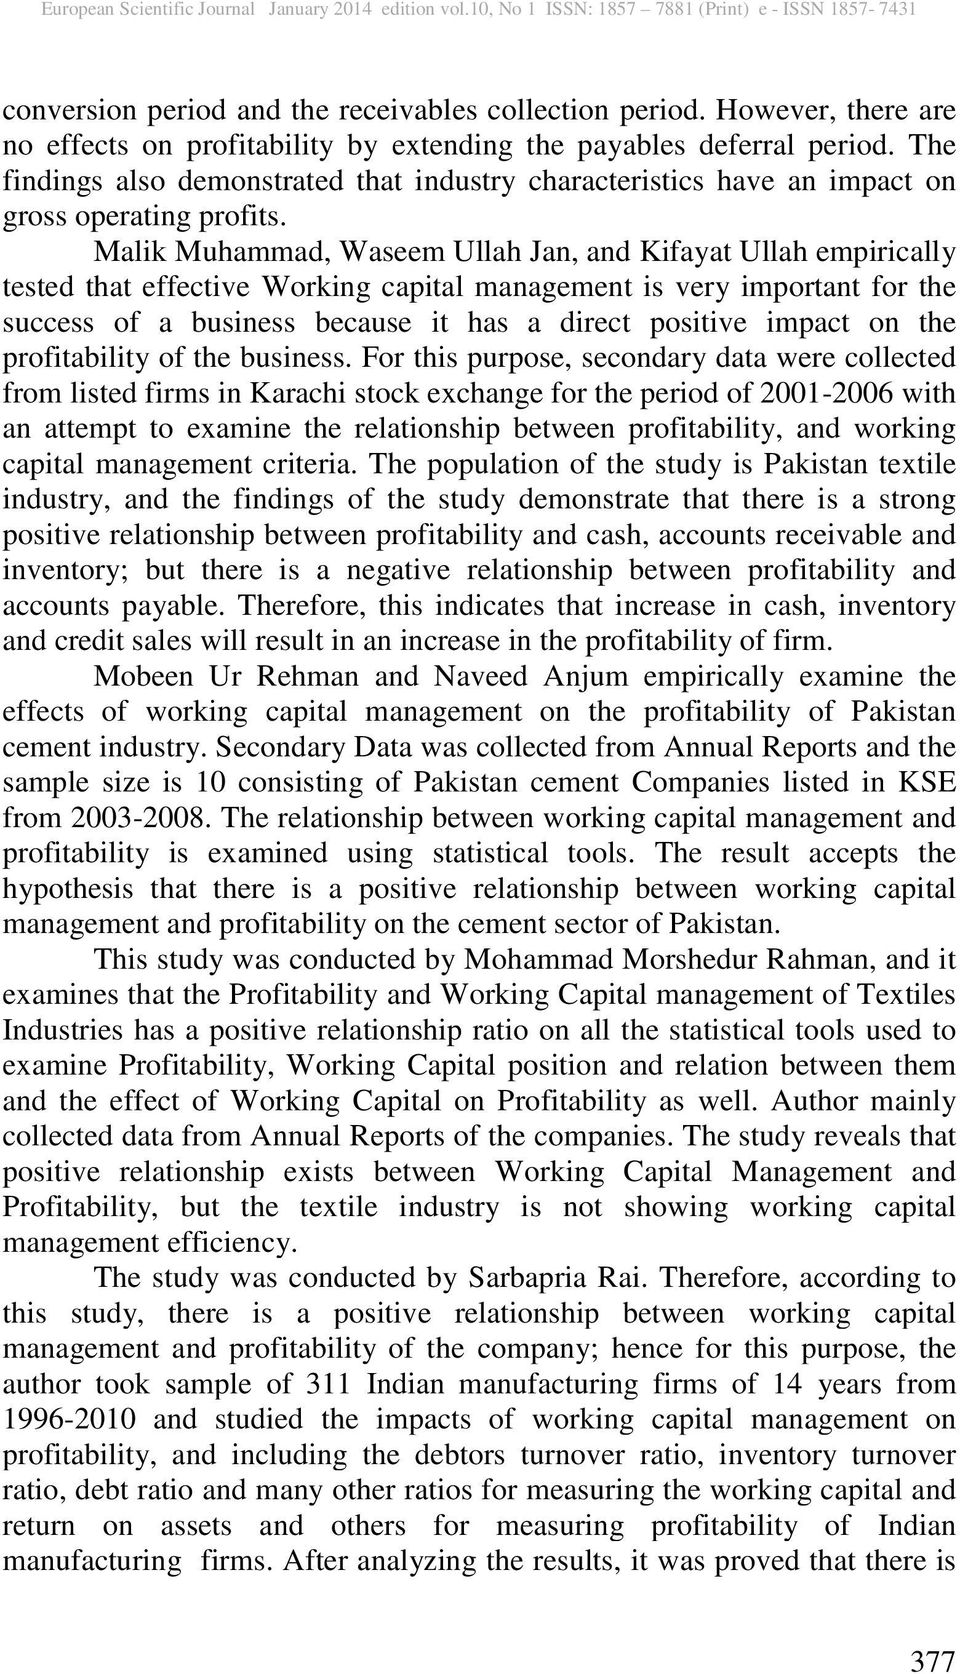 Malik Muhammad, Waseem Ullah Jan, and Kifayat Ullah empirically tested that effective Working capital management is very important for the success of a business because it has a direct positive